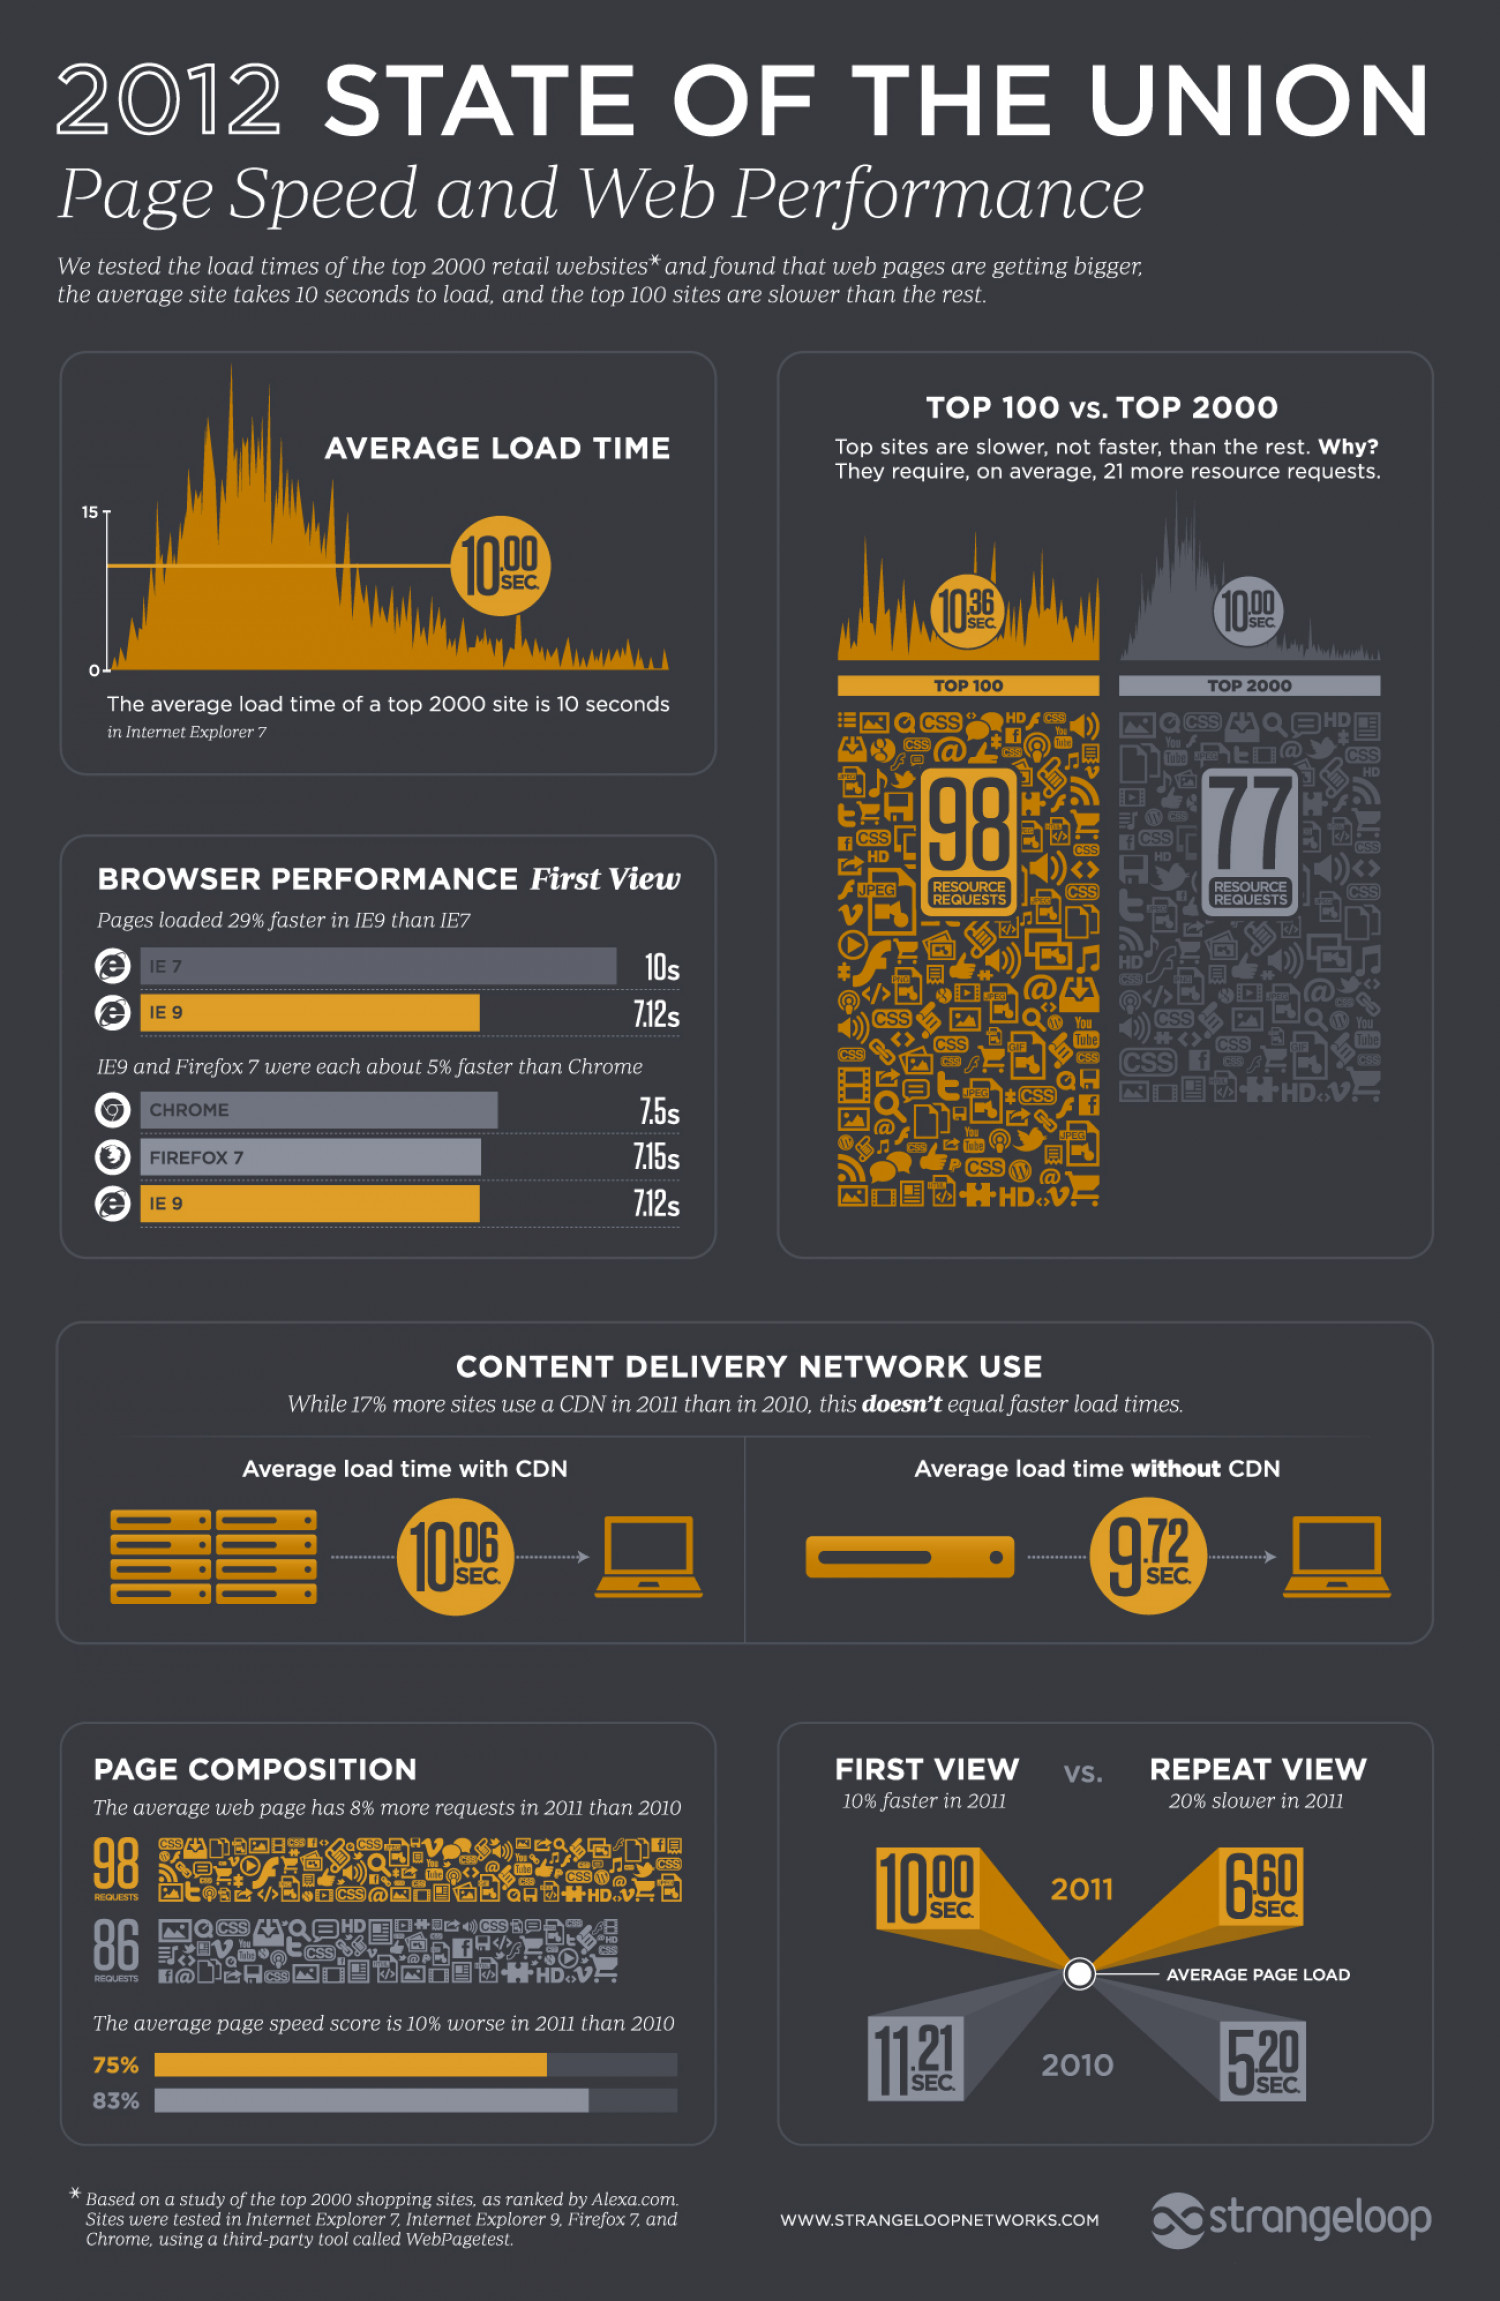 2012 State of the Union for E-Commerce Page Speed and Website Performance Infographic